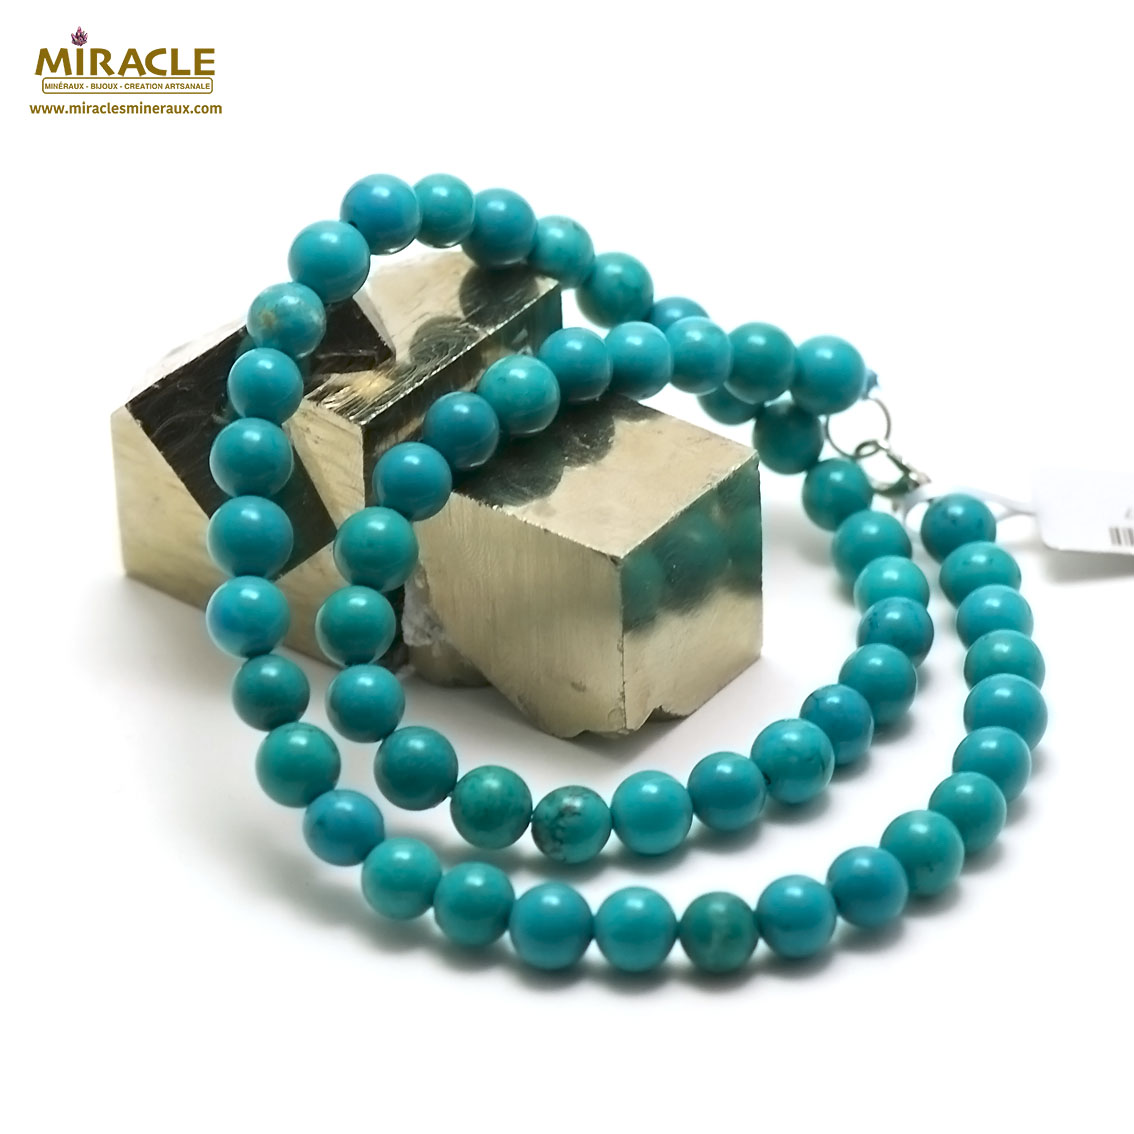 collier turquoise  perle ronde 8 mm, pierre naturelle